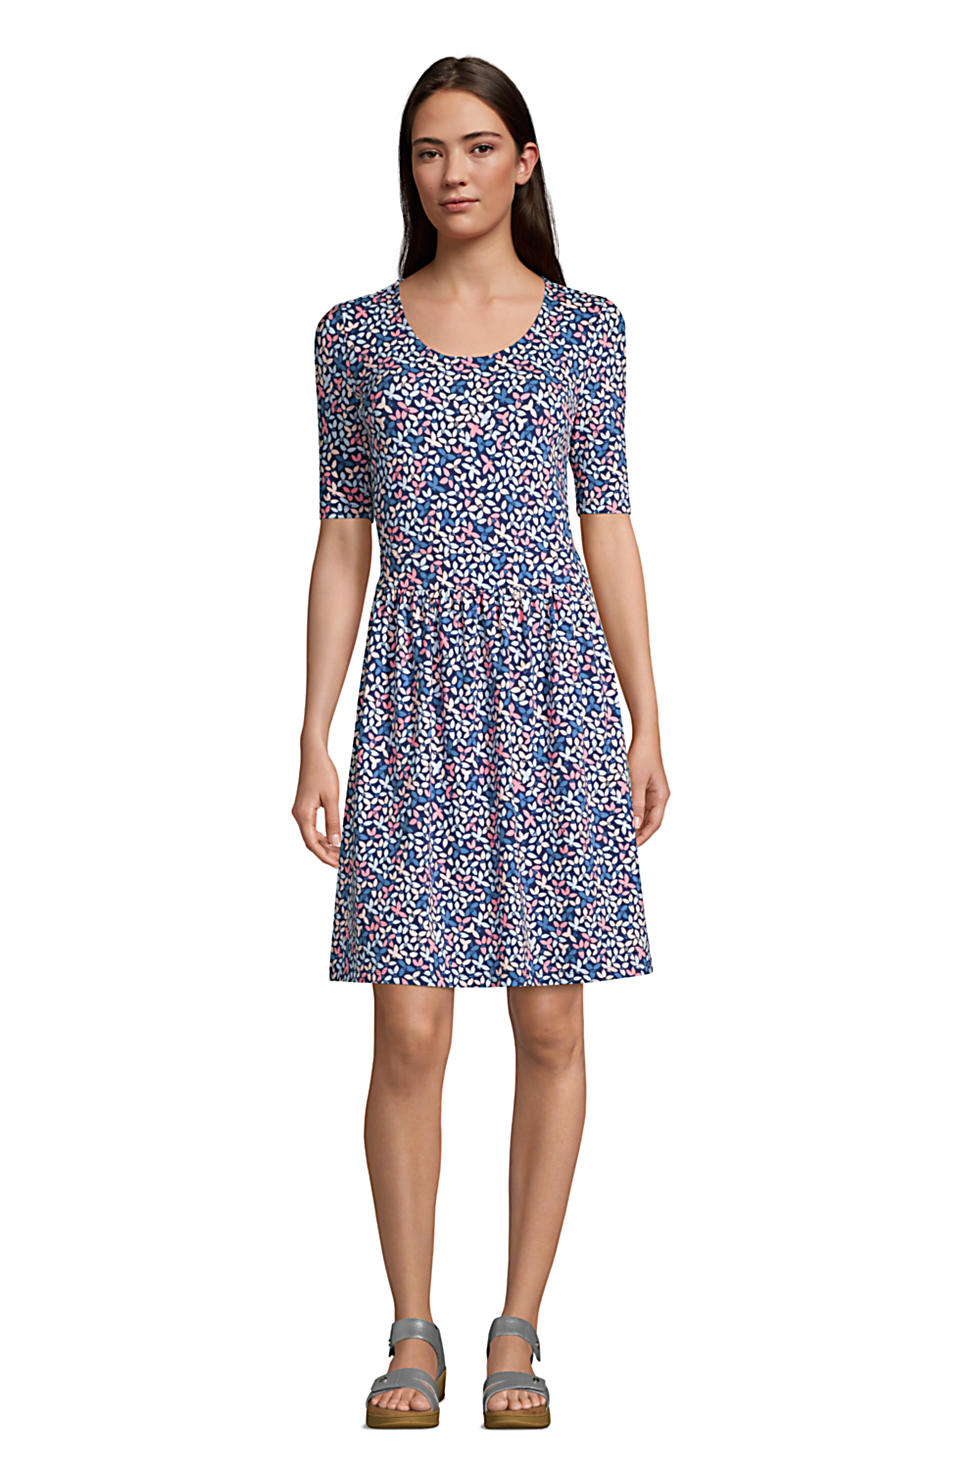 Lands End Elbow Sleeve Knee Length Fit and Flare Dress